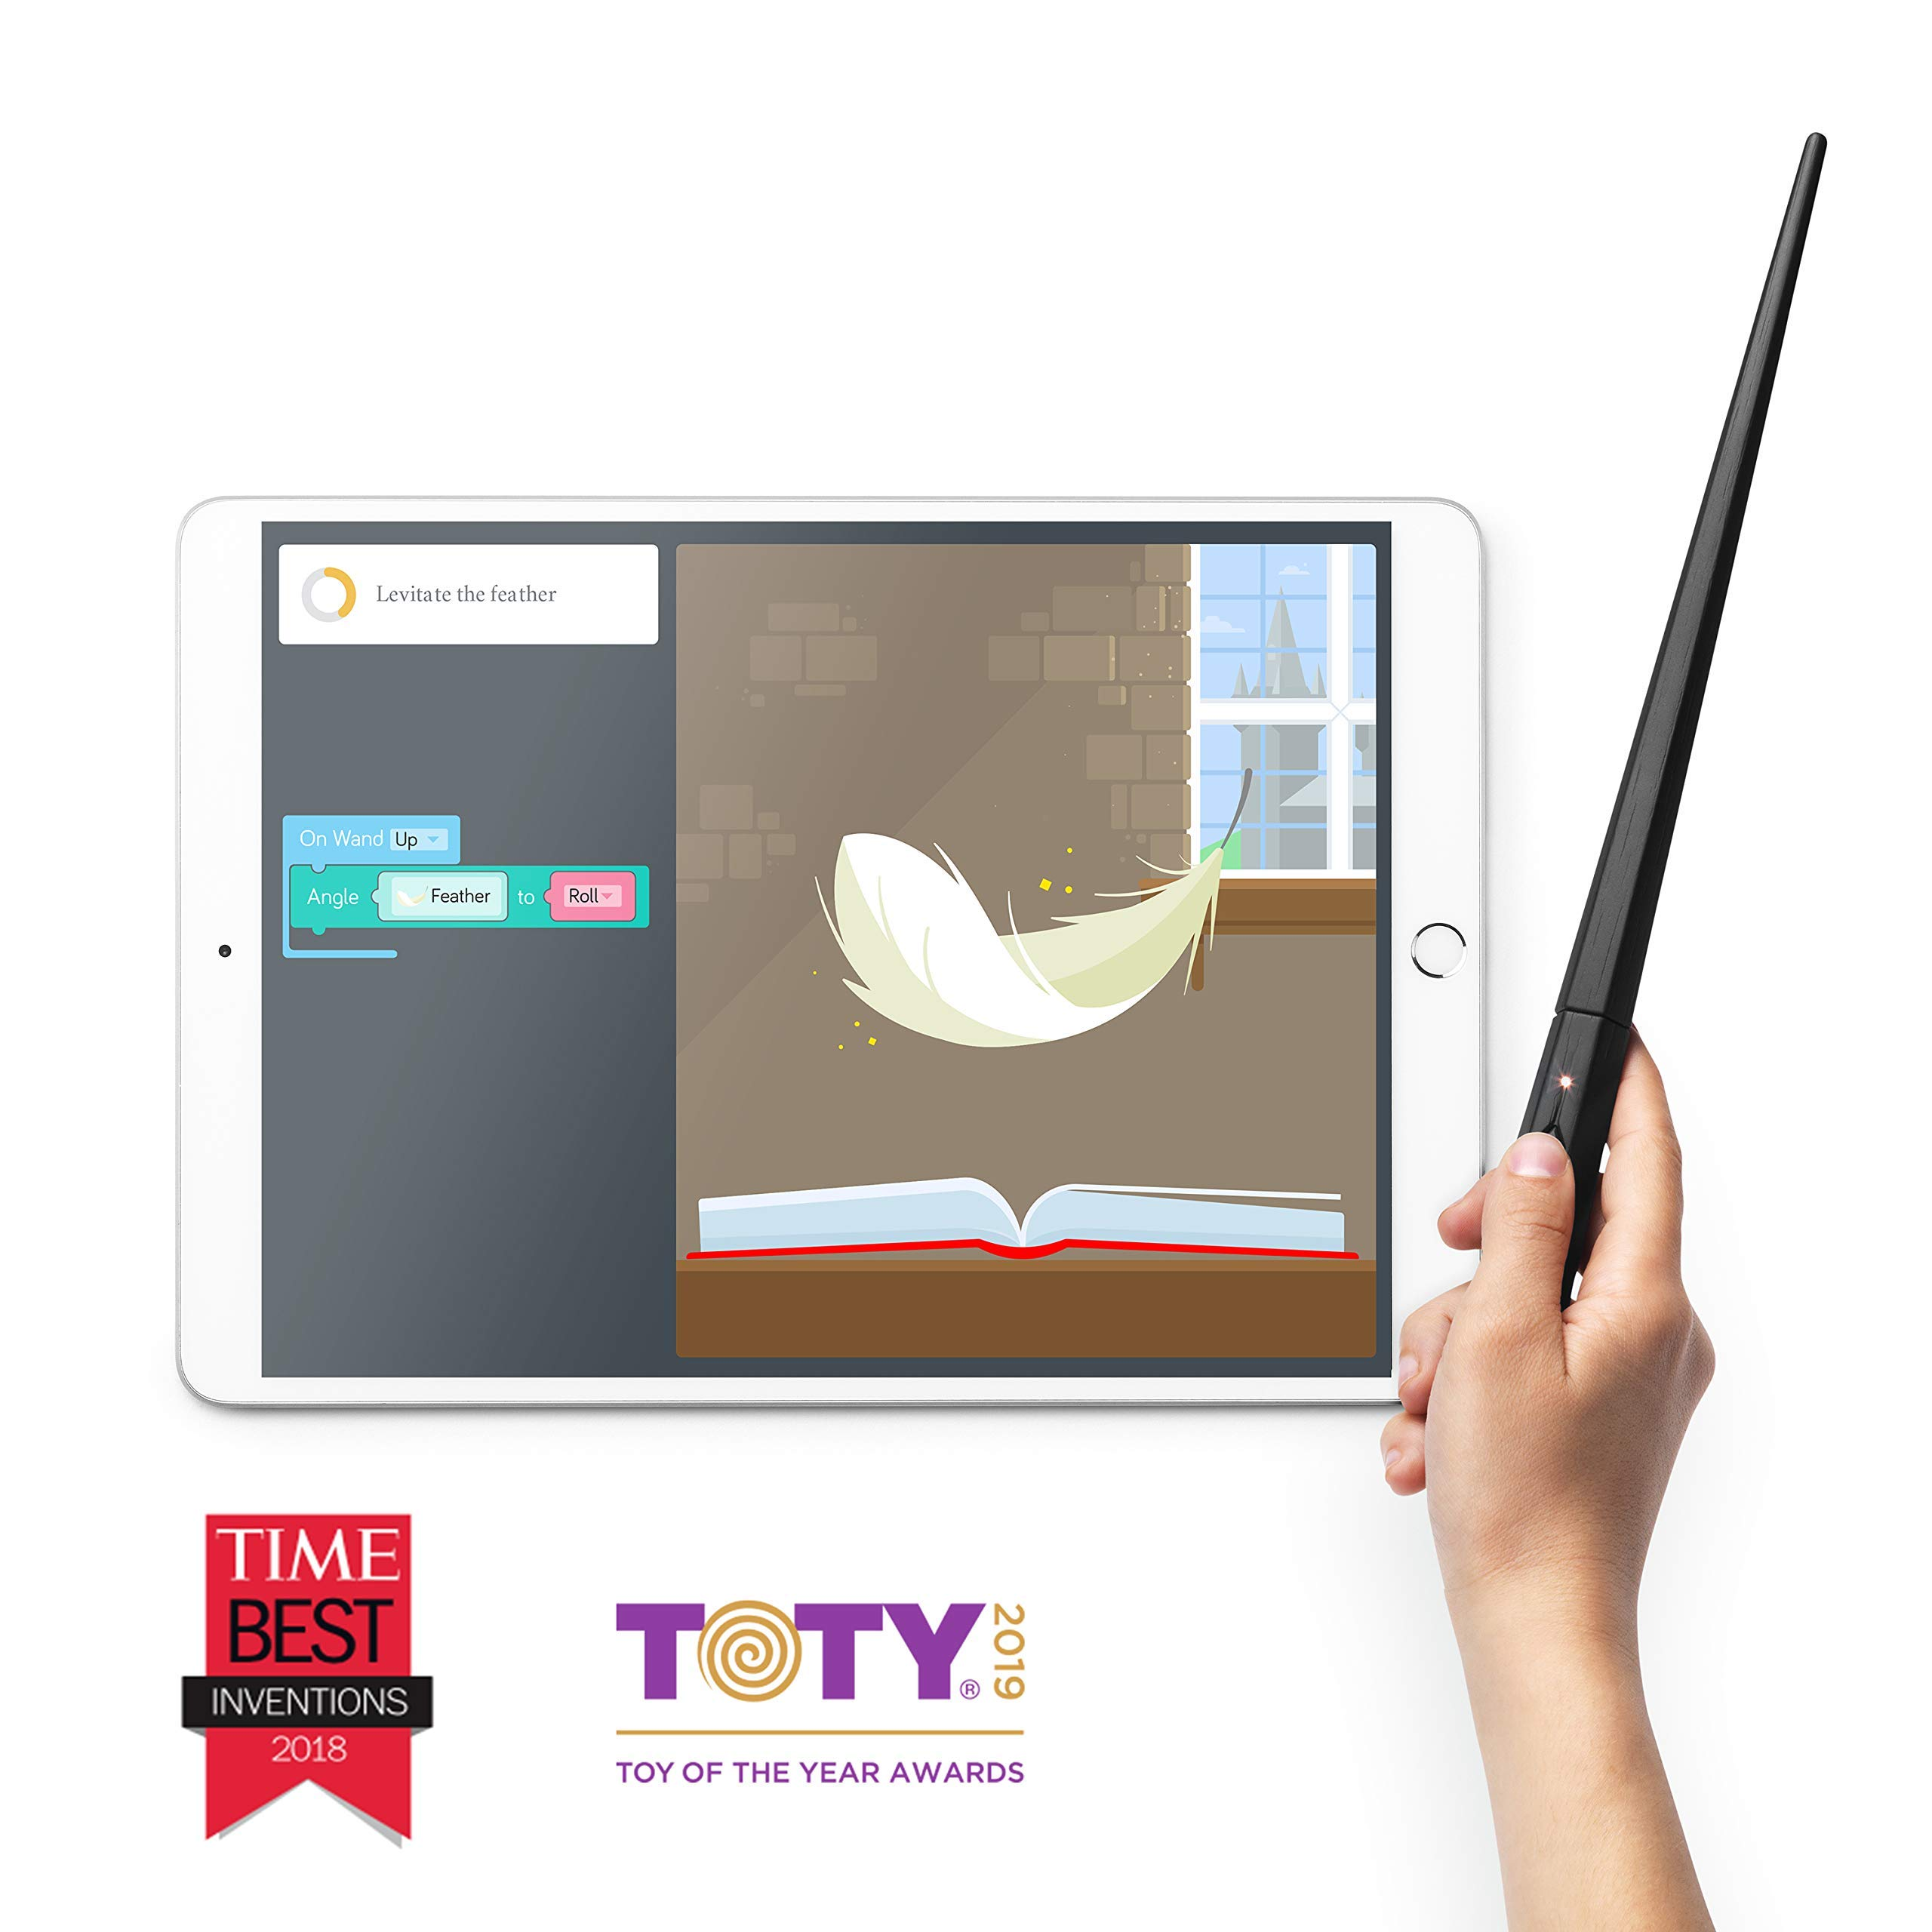 Kano Harry Potter Coding Kit - Build a Wand. Learn To Code. Make Magic. (Renewed) by Kano (Image #1)